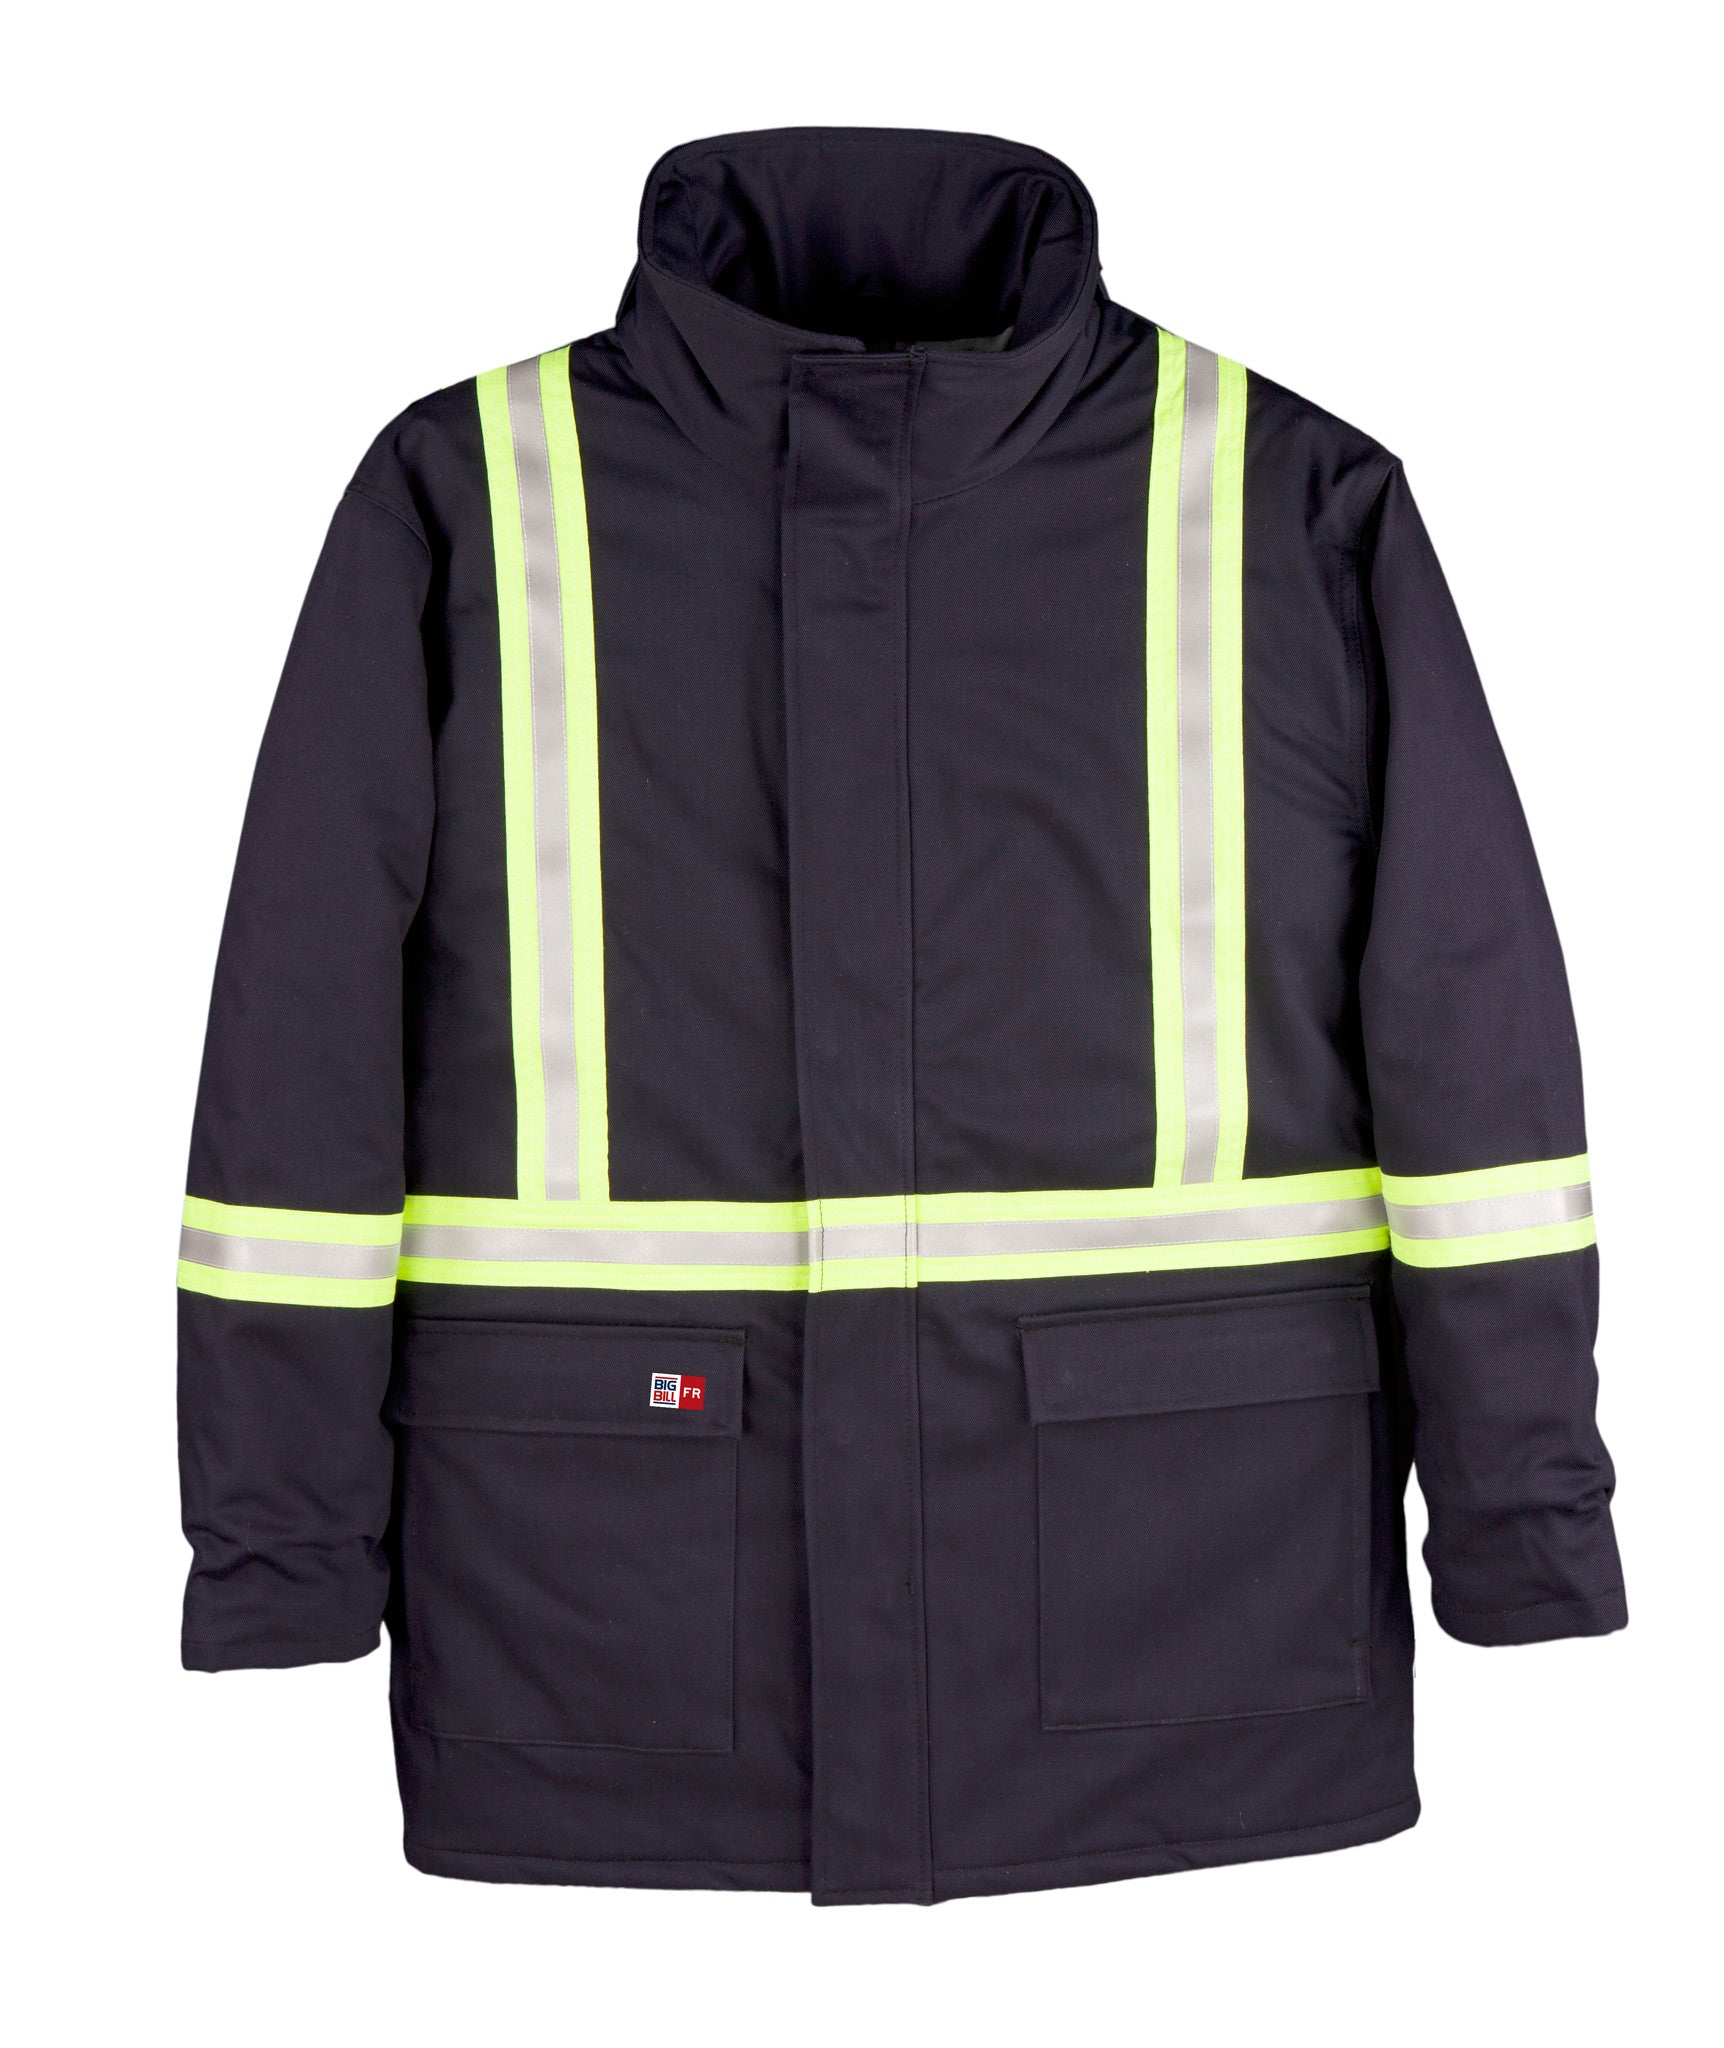 Big Bill Ultra Soft 3 4 Length Jacket M305us7 Jobsite